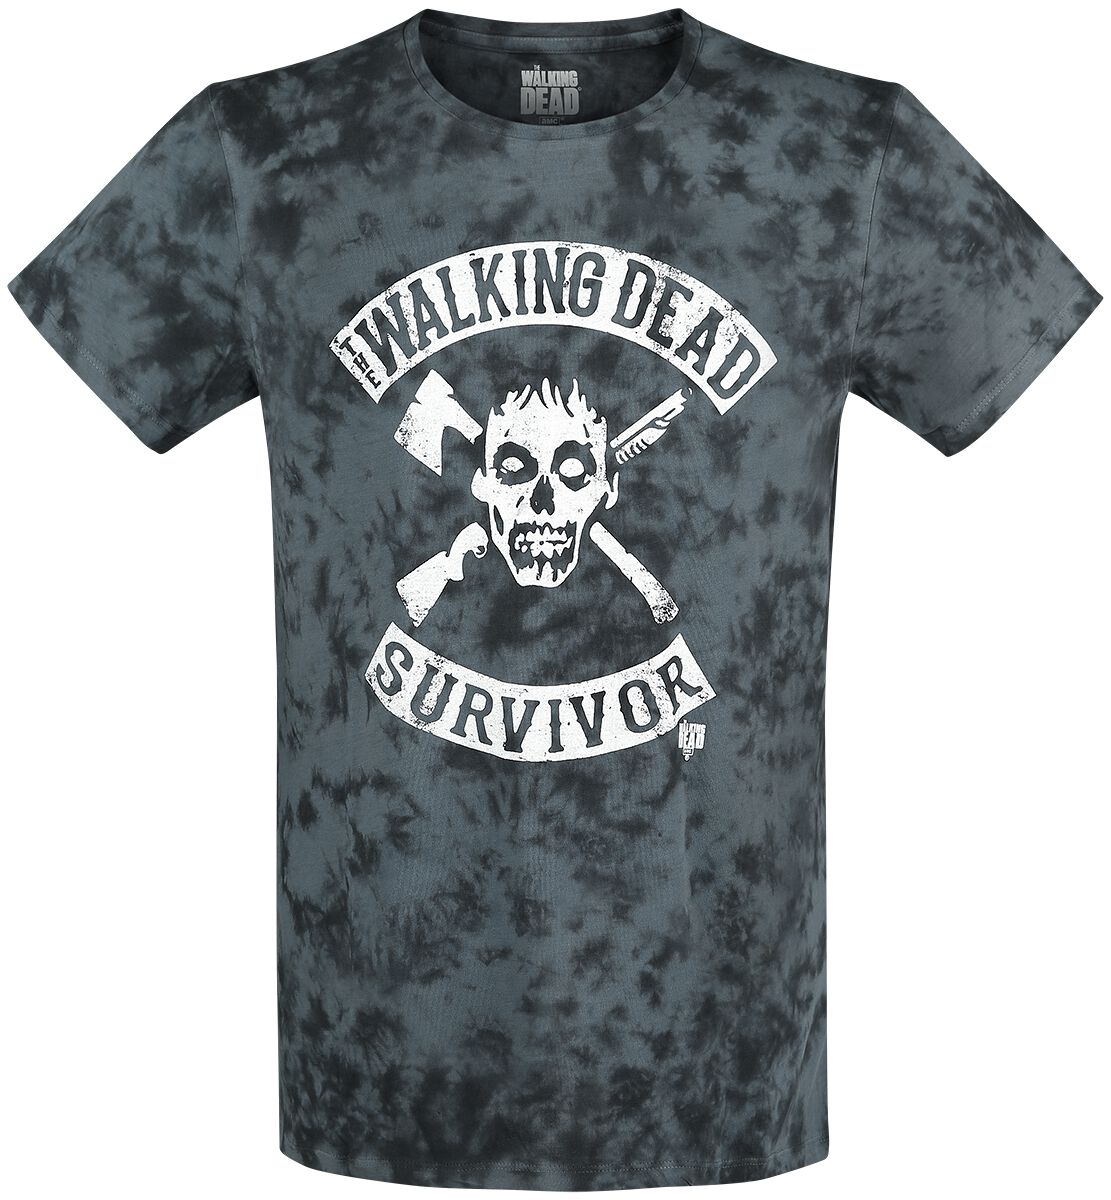 cf4de771d2f1 The Walking Dead Neganaposs Saviors T Shirt hvid sort